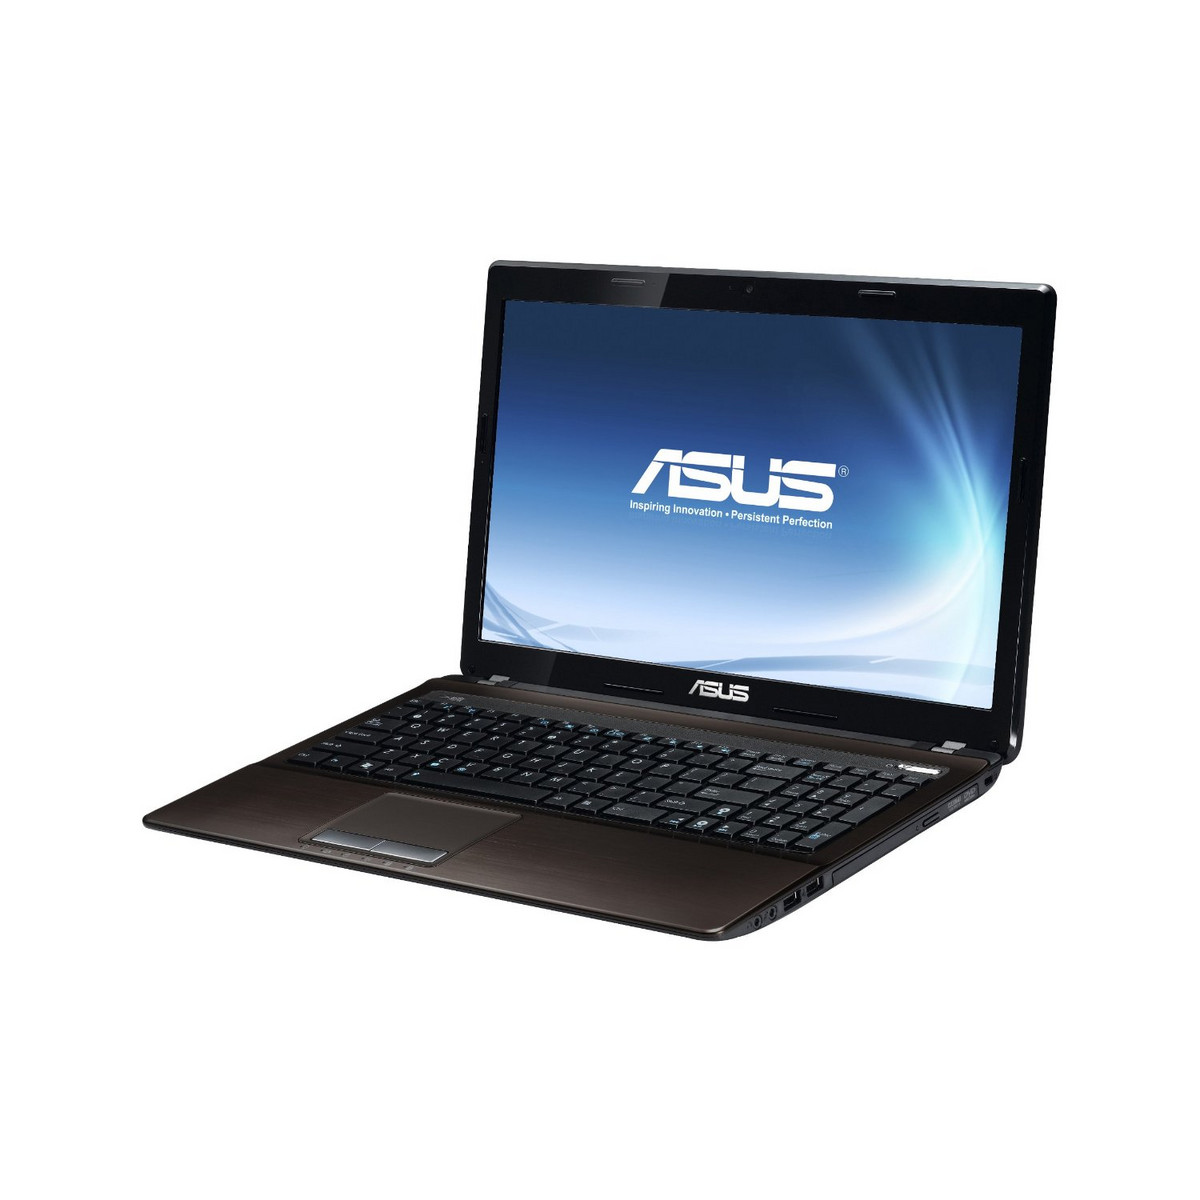 Asus P53E Notebook Turbo Boost Monitor Driver Windows XP